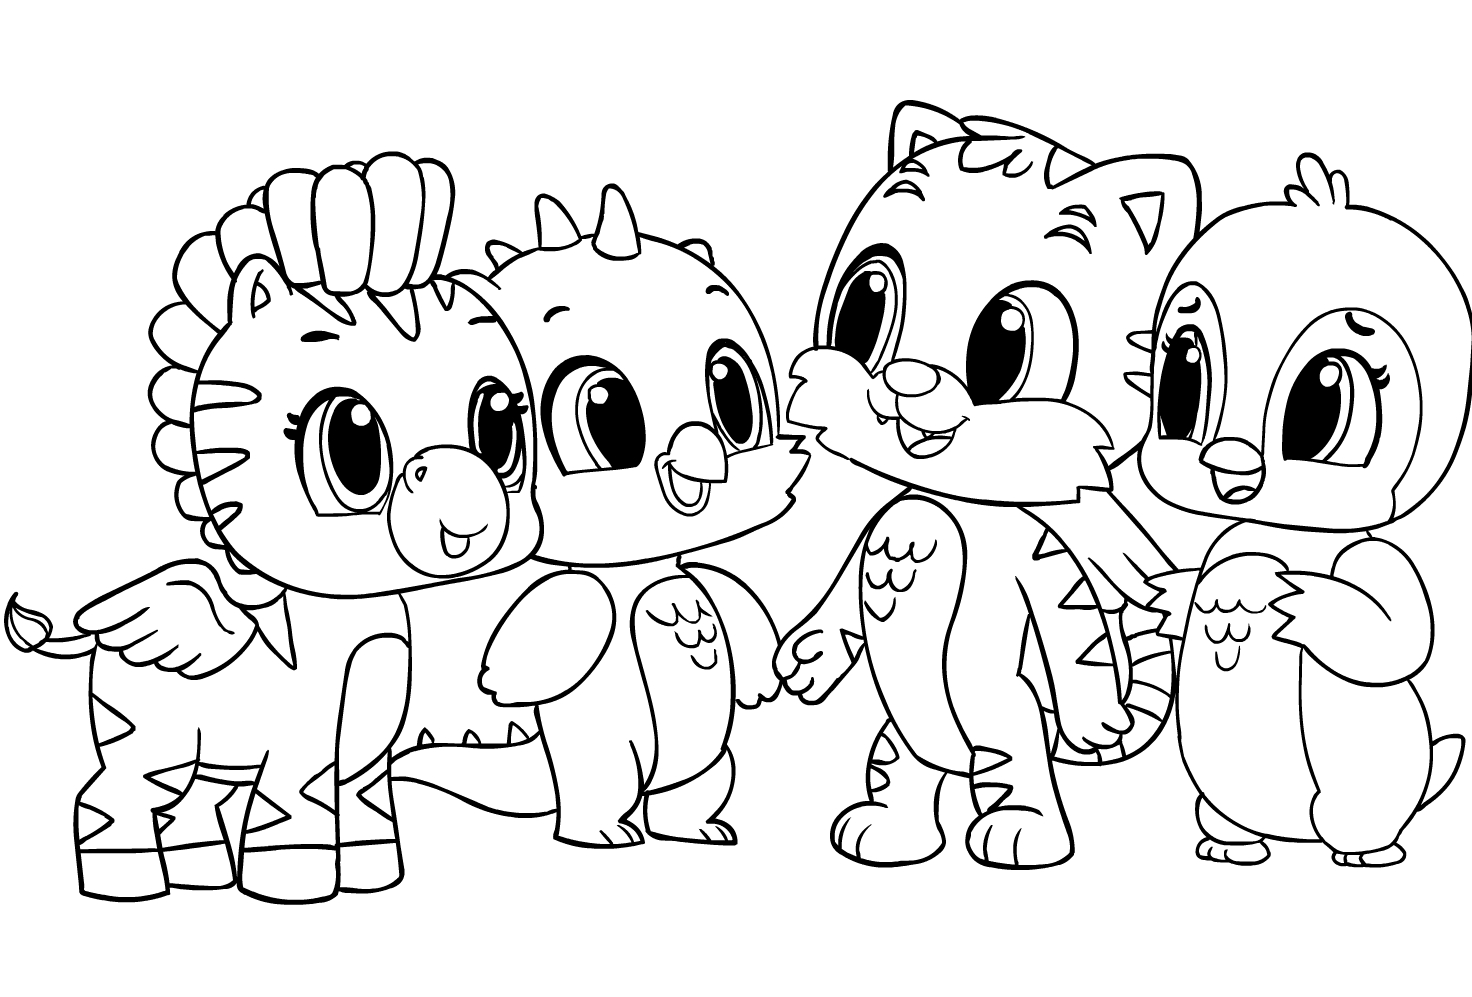 Hatchimals Coloring Page - Drawing 6